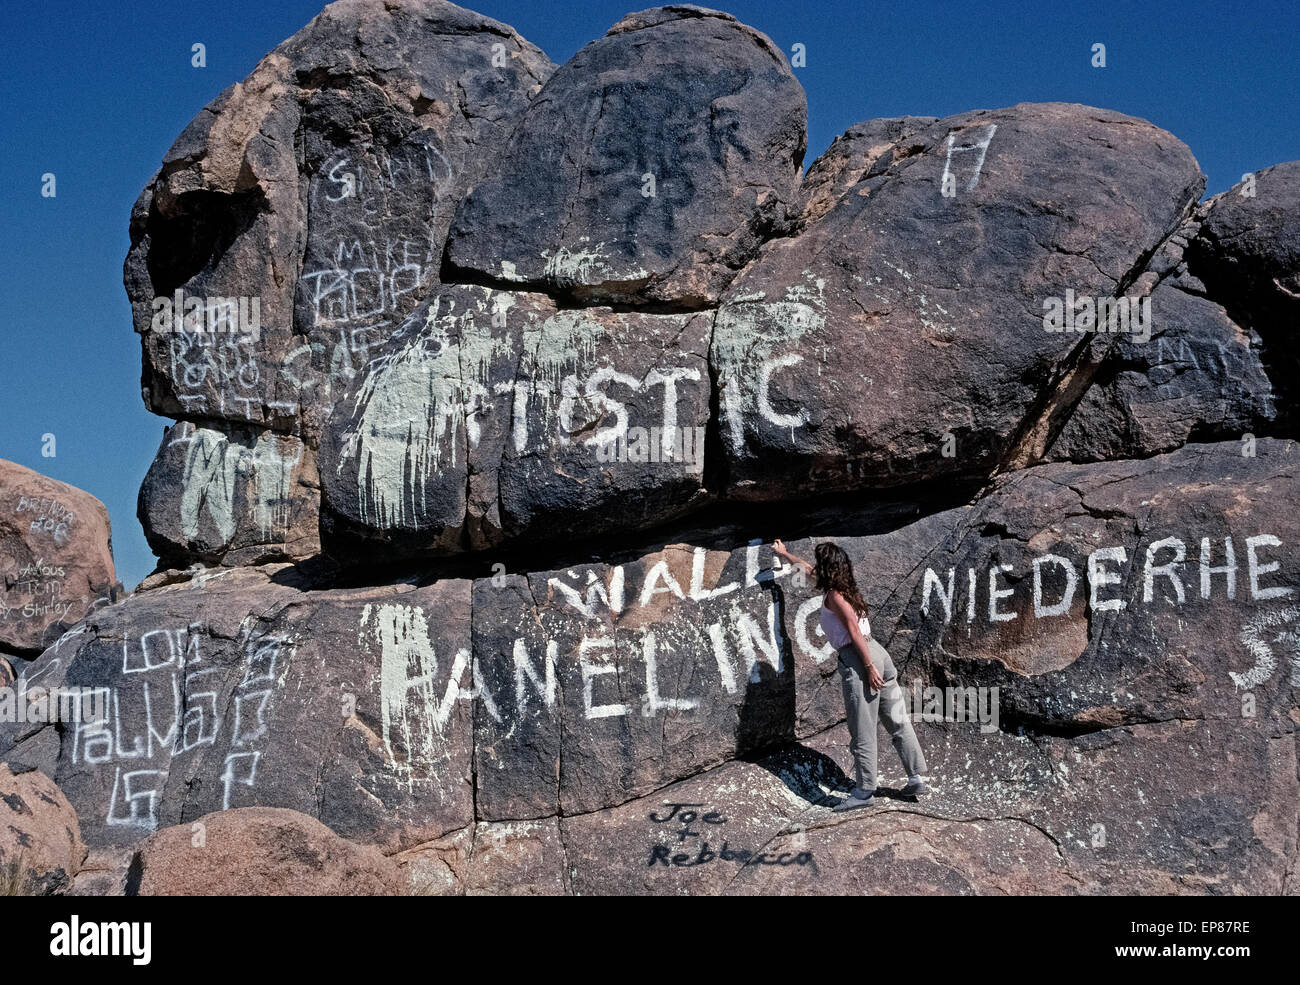 Spray-painted names and other graffiti deface the boulders and natural scenery in the desolate Mojave Desert near - Stock Image